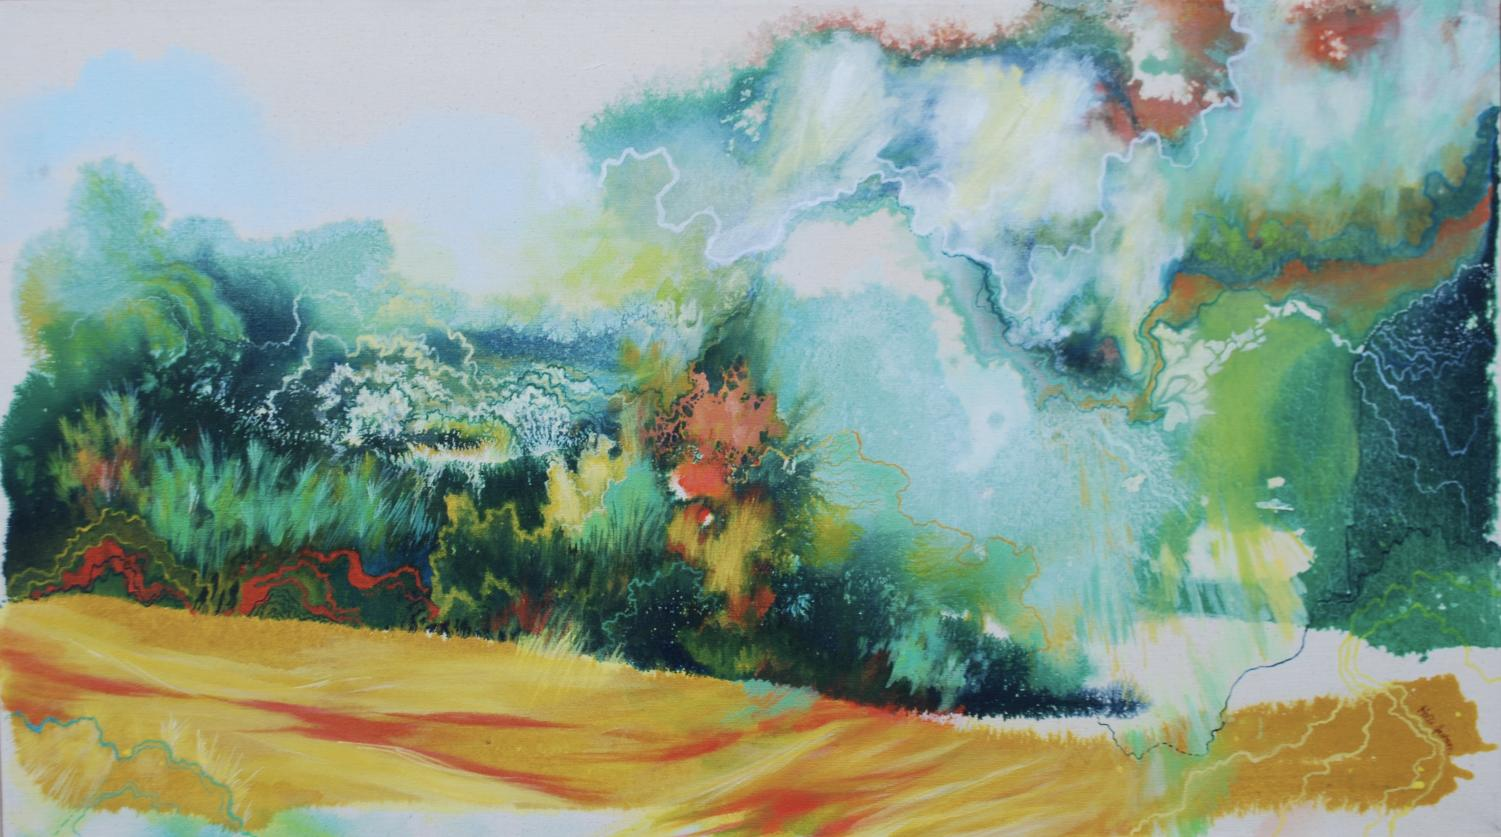 Seasonal Resurgence by Holli Jacobson, a local Eau Claire artist who paints about climate change.